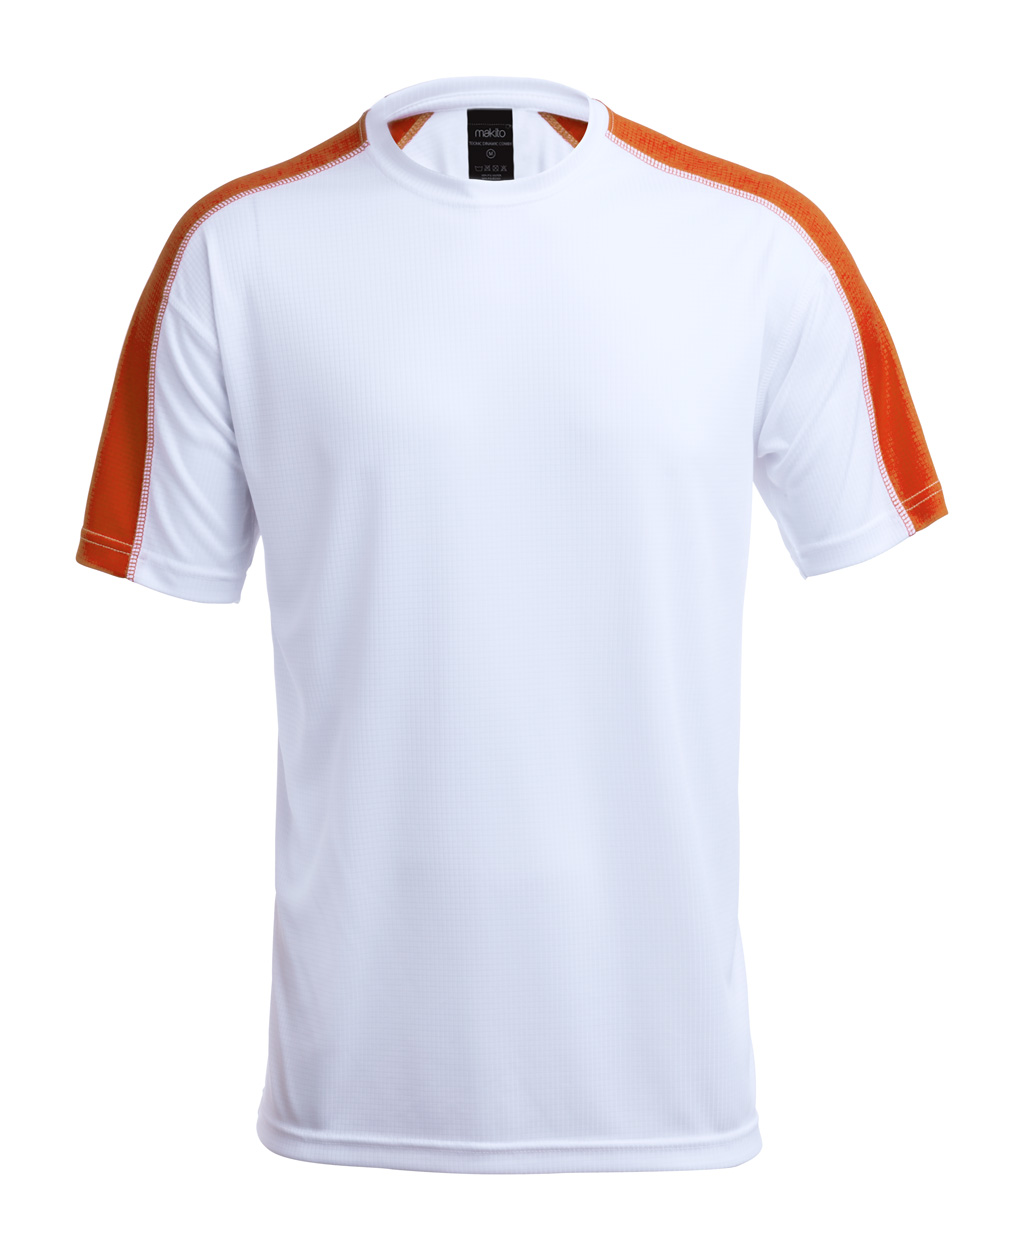 Tecnic Dinamic Comby sport T-shirt